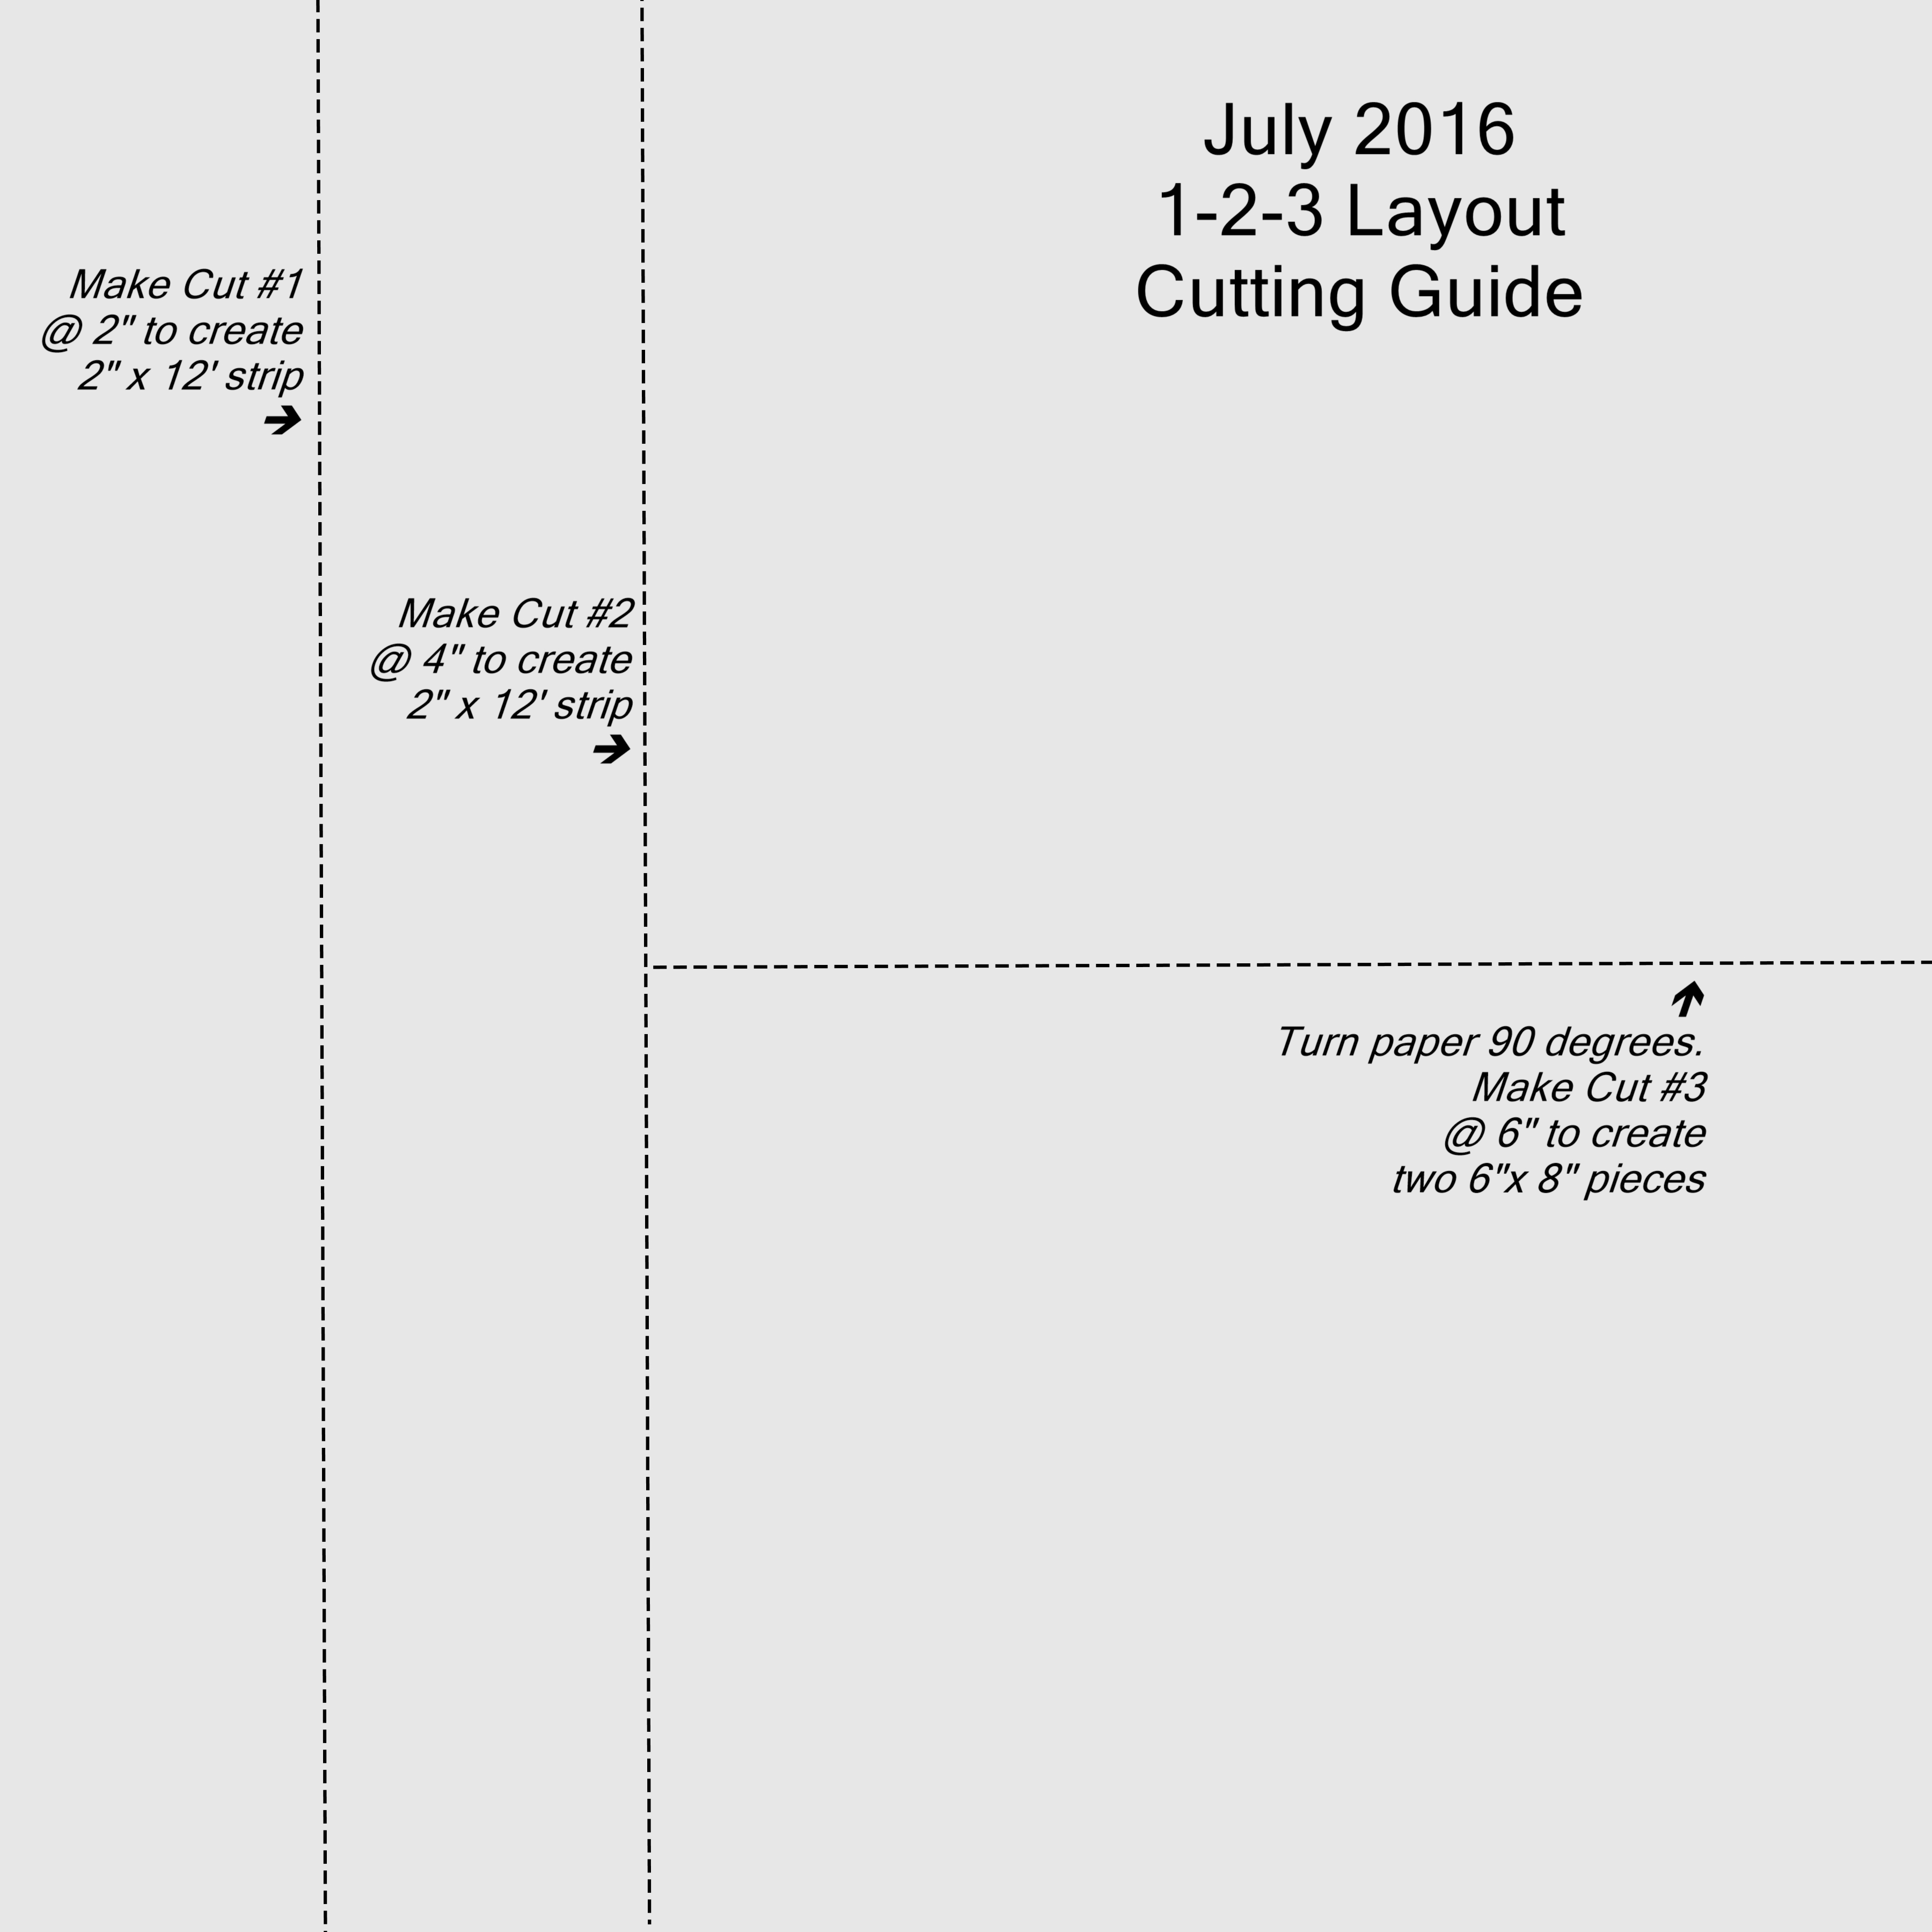 July 1-2-3 Cutting Guide